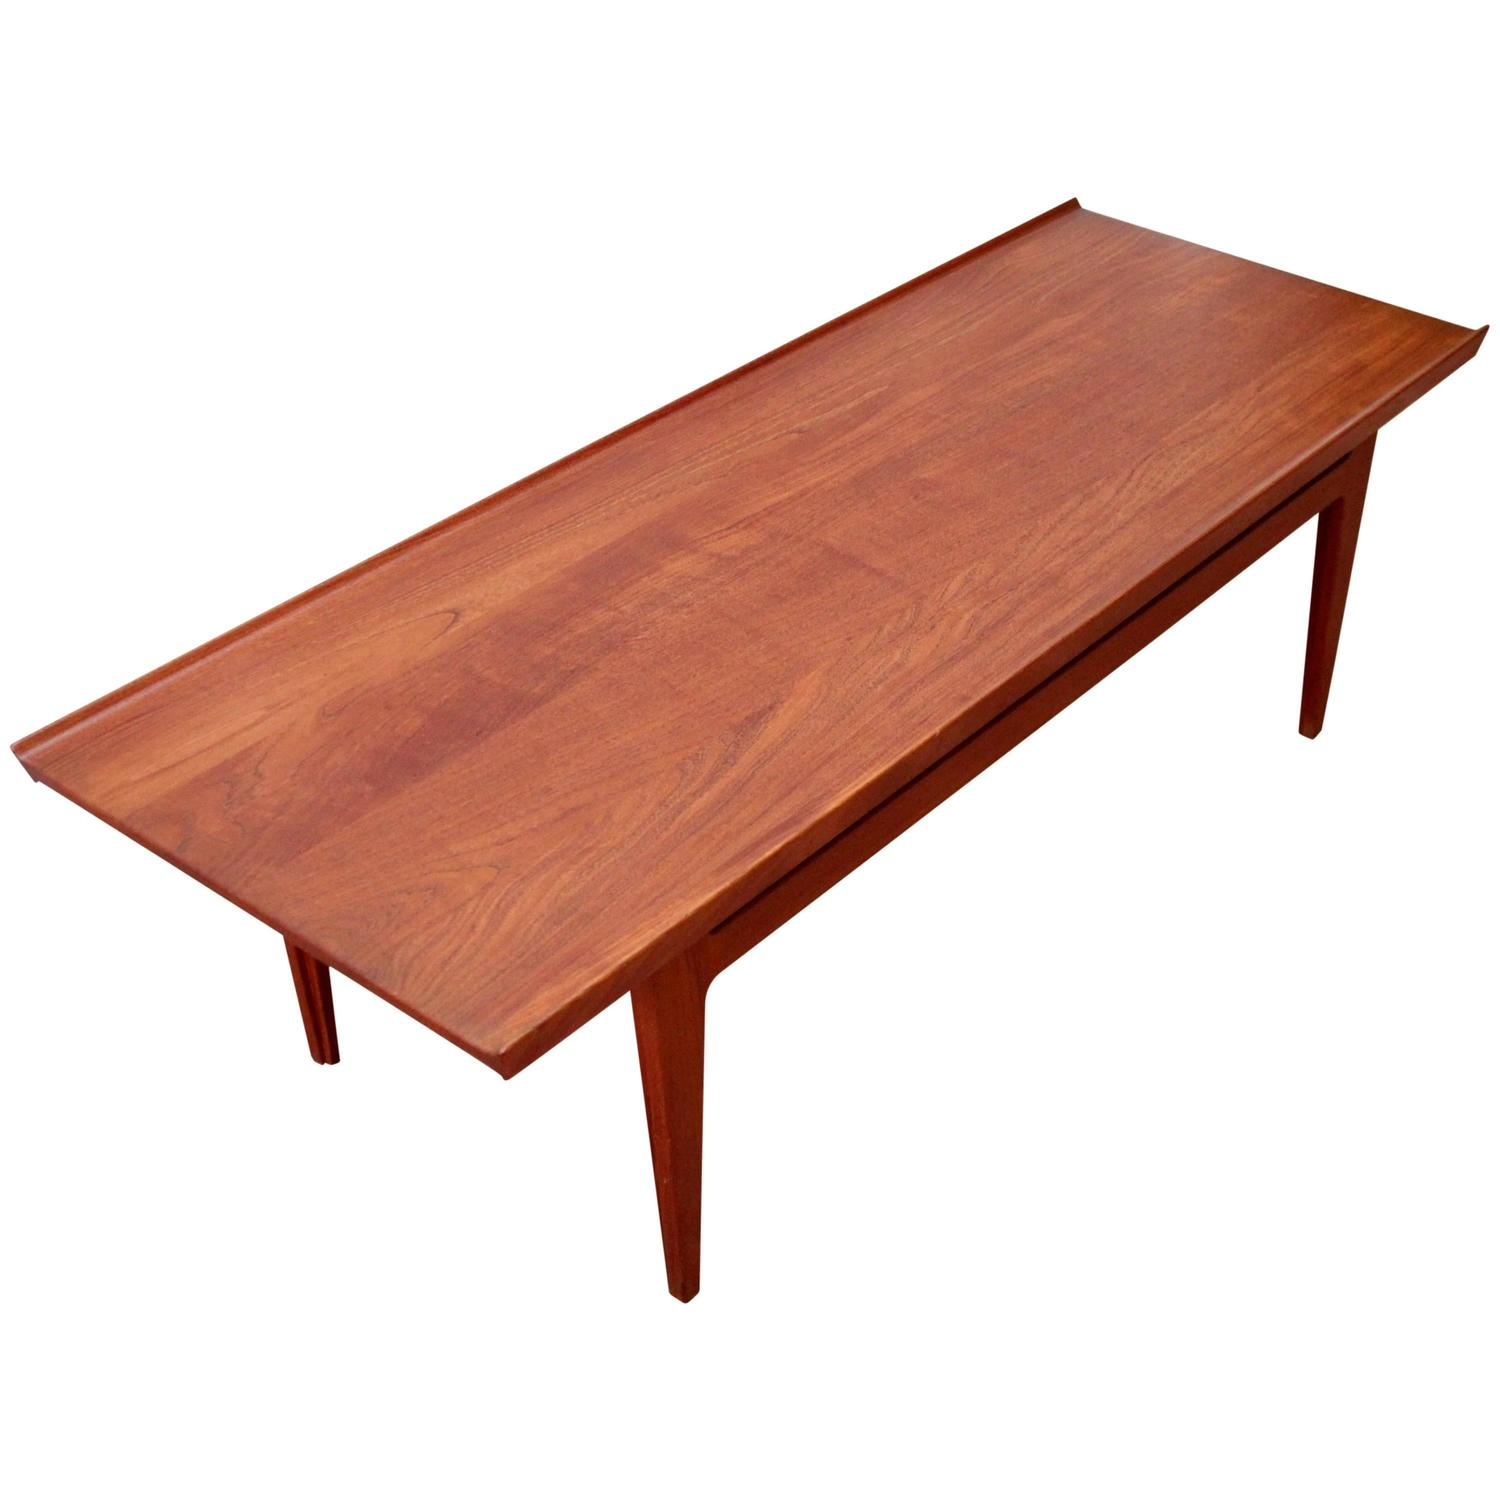 finn juhl danish coffee table at 1stdibs. Black Bedroom Furniture Sets. Home Design Ideas